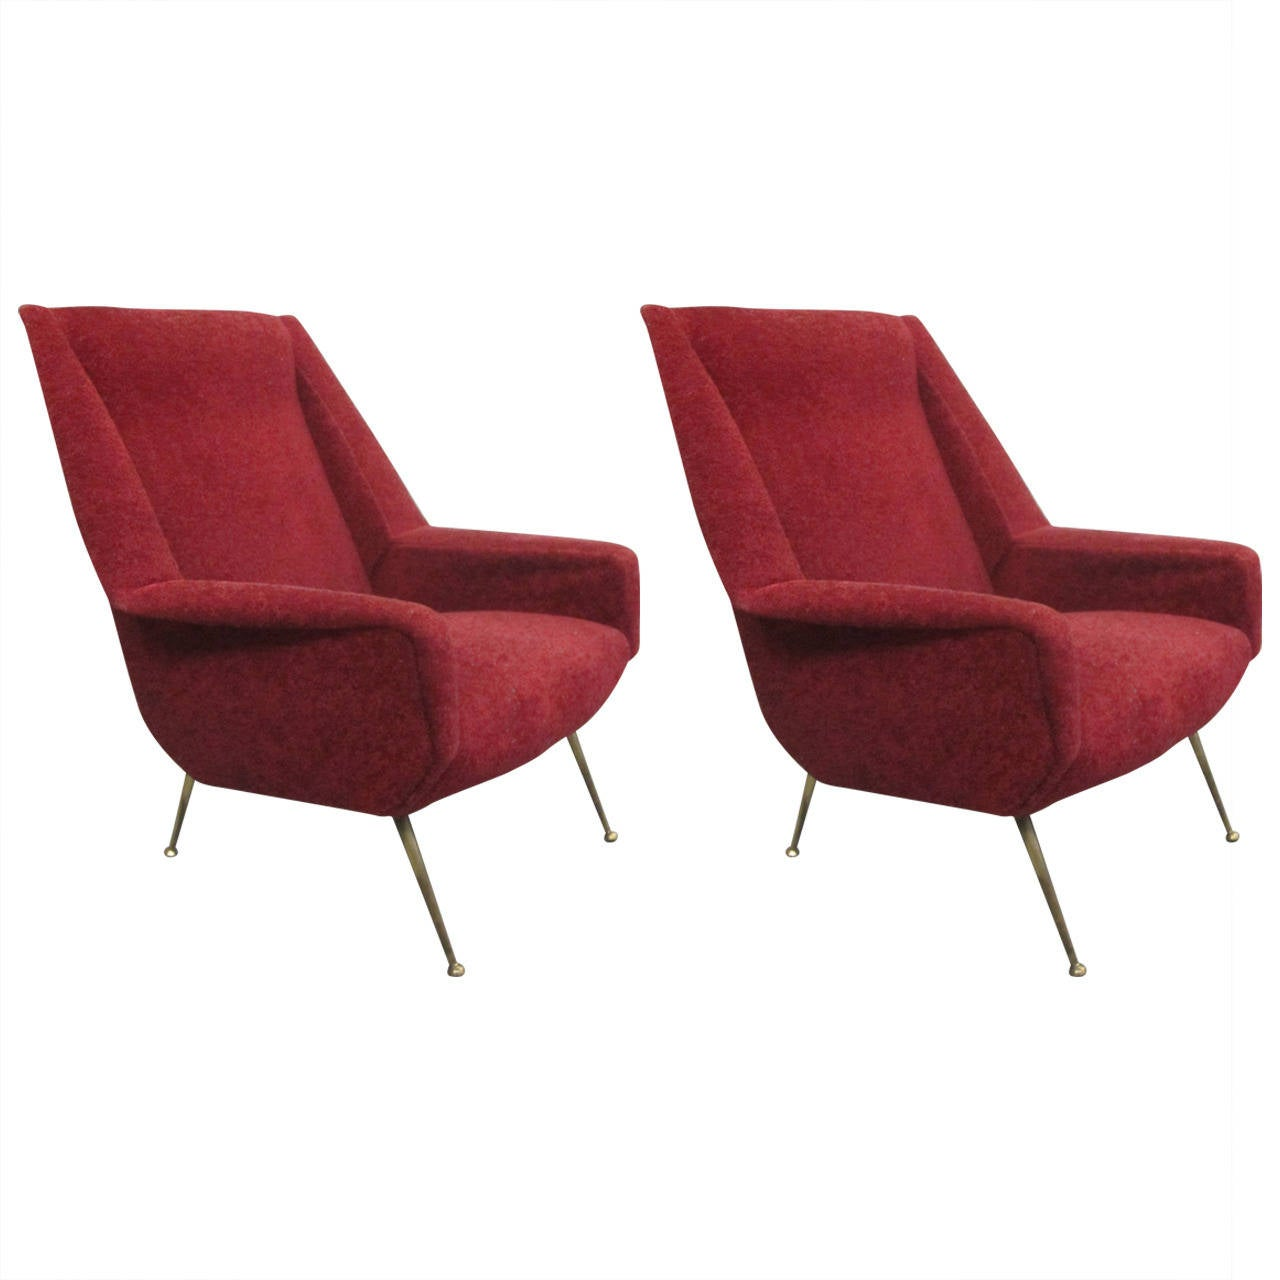 Pair of Italian Mid-Century Modern Lounge Chairs Attr. Gianfranco Frattini, 1950 1